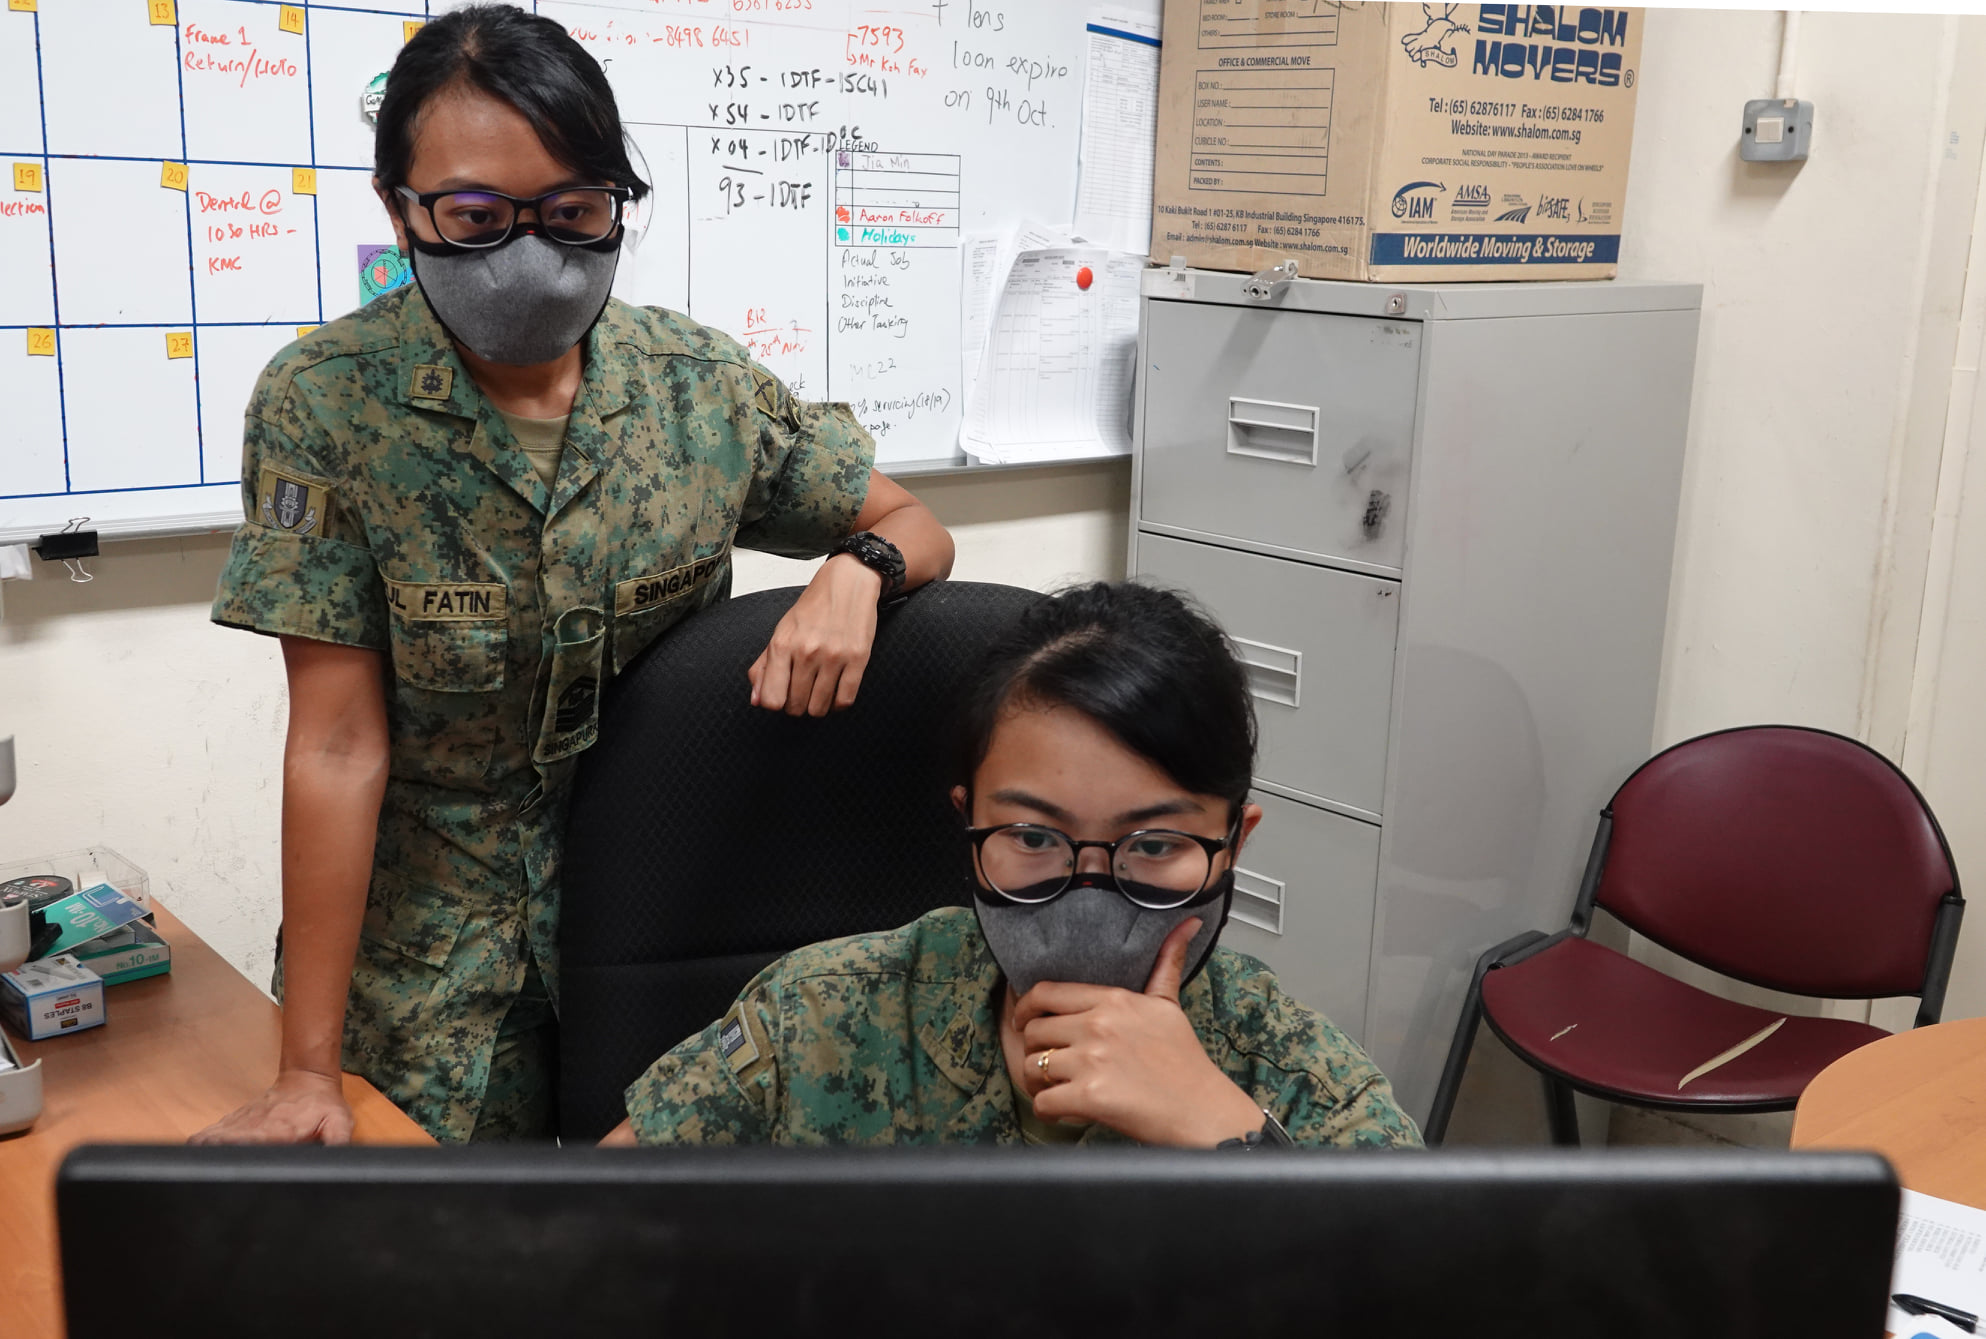 SSG Fatin (right) and 1SG Aini (left) making sure the logistic needs of the units are always met so that they can train seamlessly.